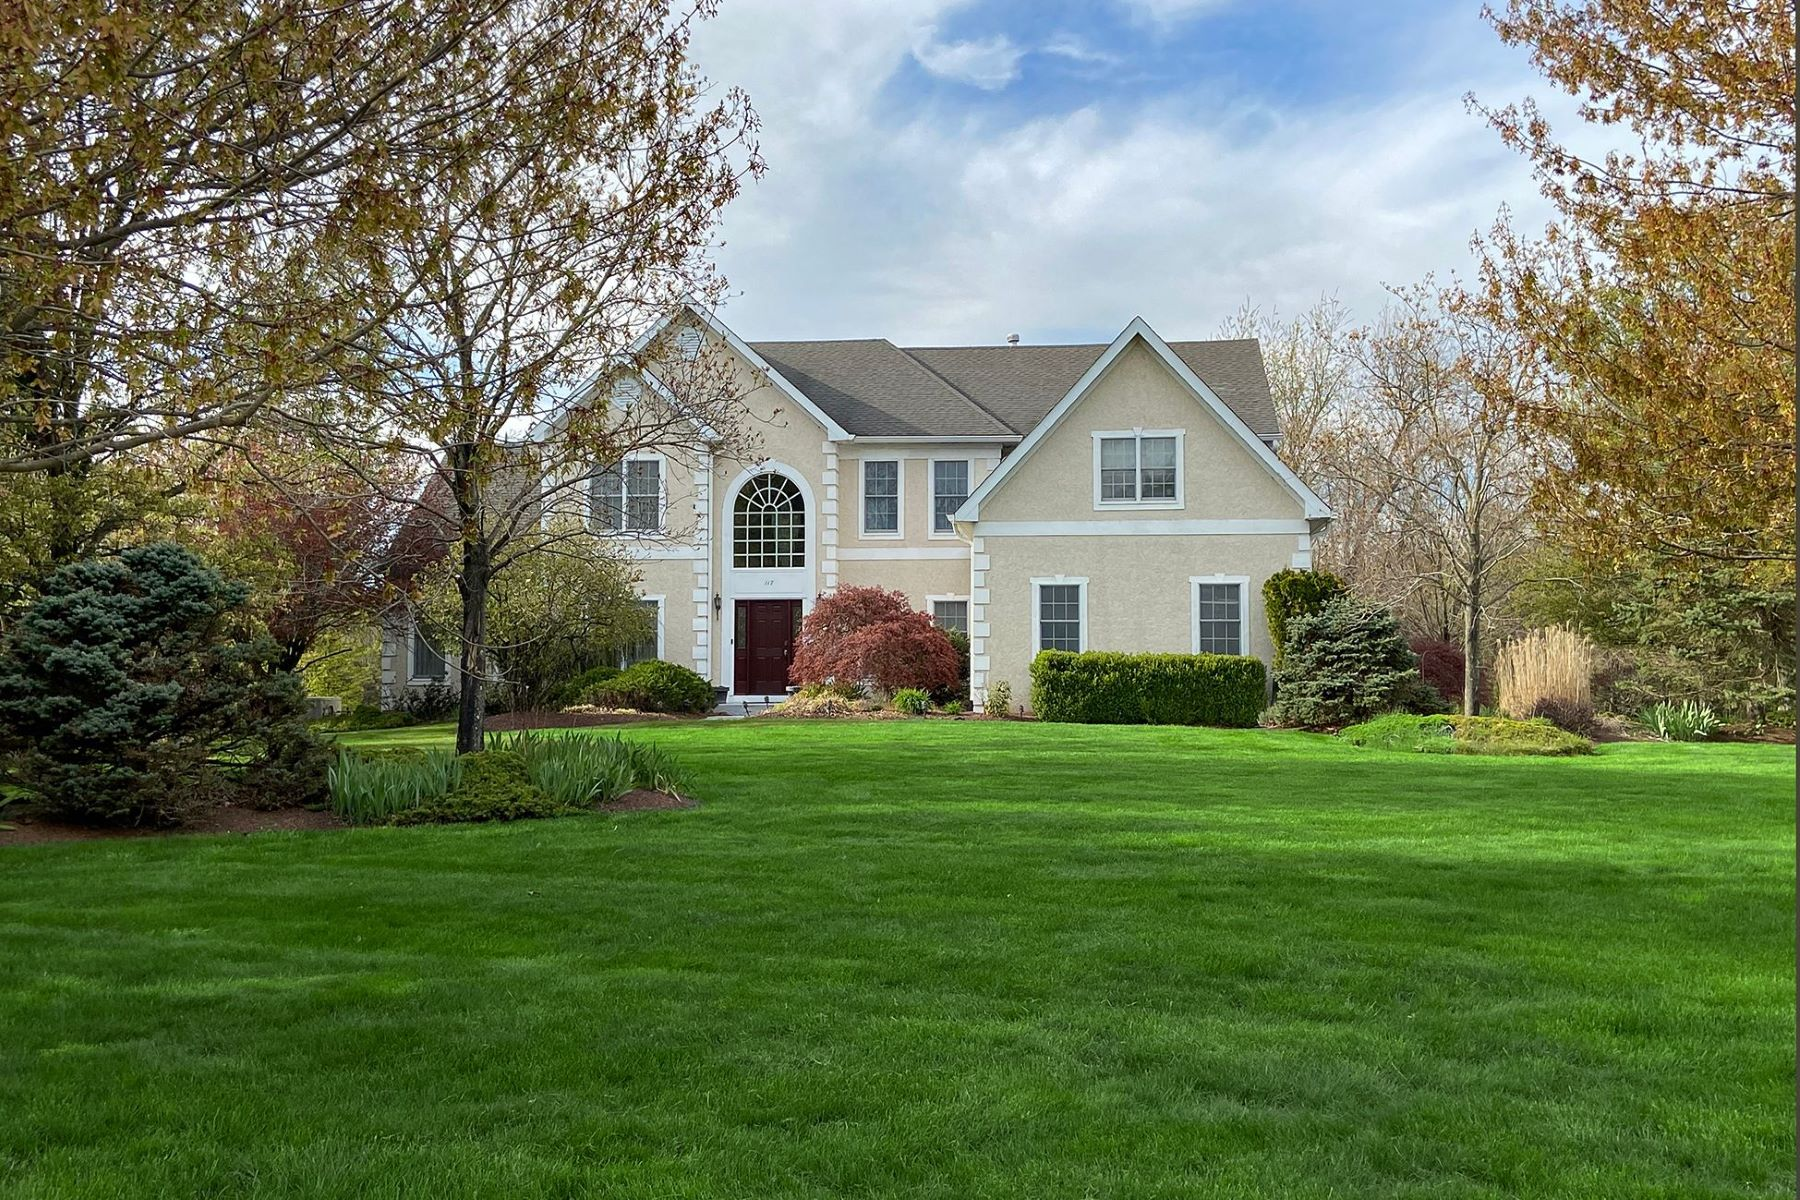 Property for Sale at Pristine Home and Close to Everything 117 Saxon Way, Skillman, New Jersey 08558 United States